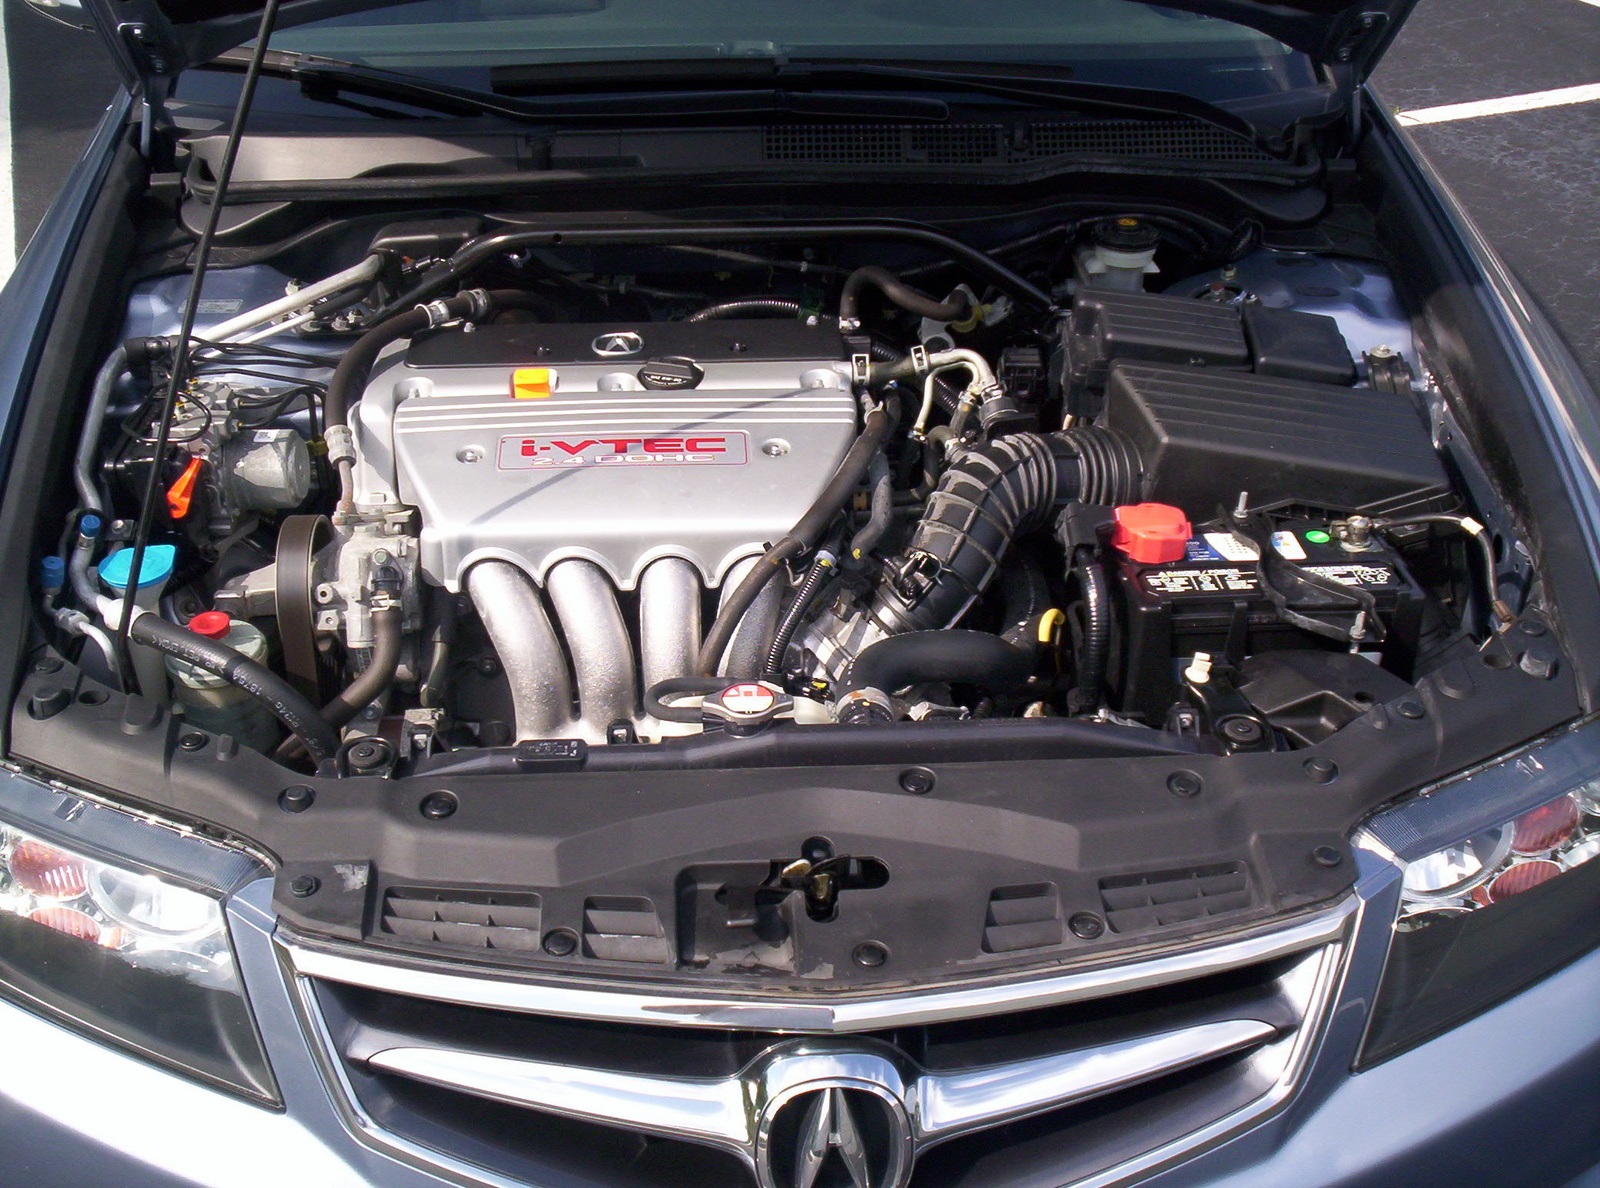 Acura Tsx 2004 Engine Diagram Great Design Of Wiring Volkswagen Touareg Ferrari Images Pictures Becuo Timing Marks Alternator Replacement